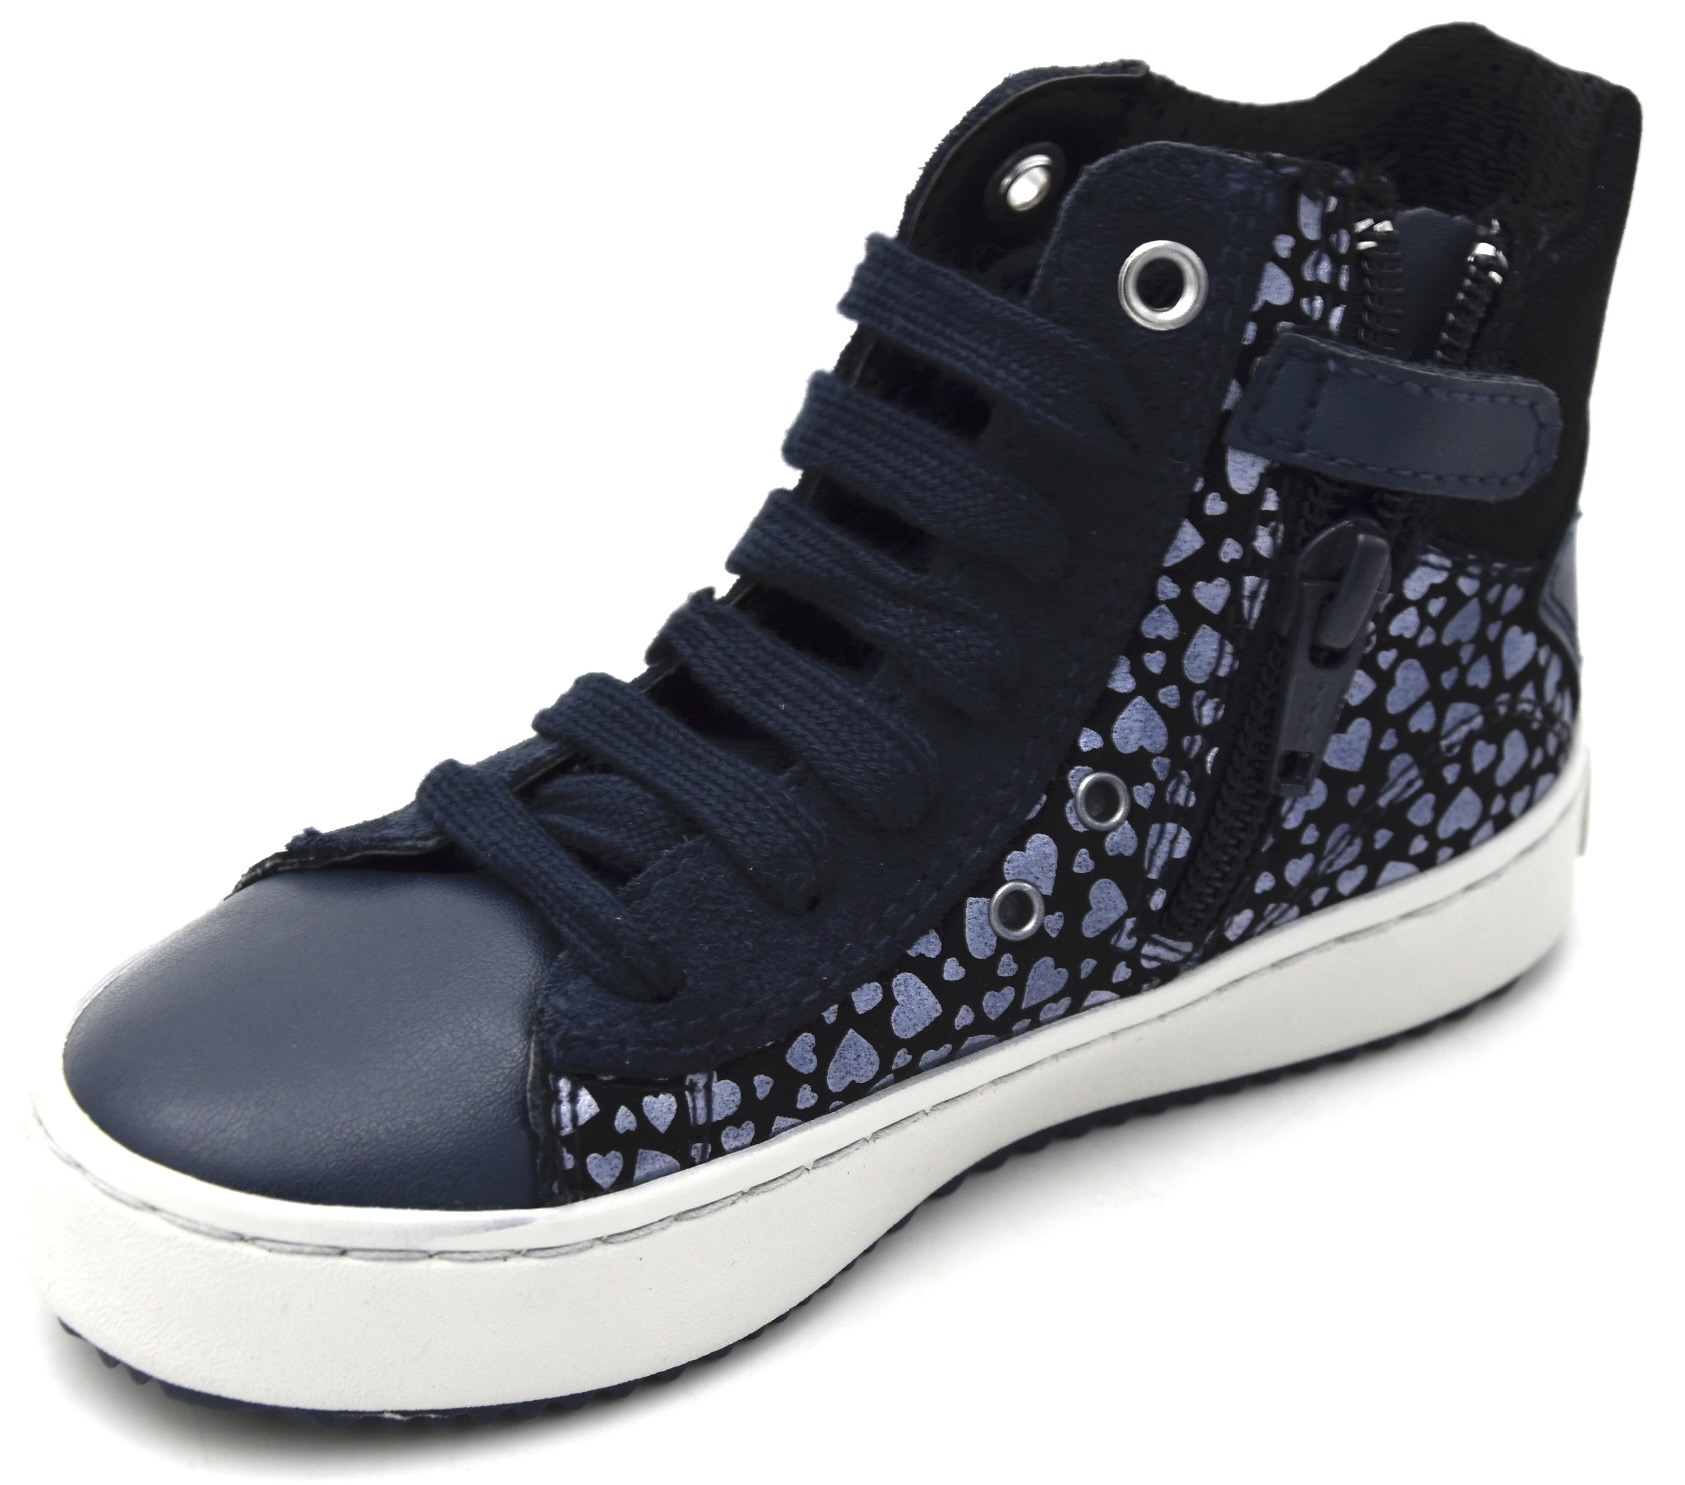 Details about GEOX JUNIOR GIRL SNEAKER SHOES CASUAL FREE TIME CODE J KALISPERA G. J844GD 0DHBC